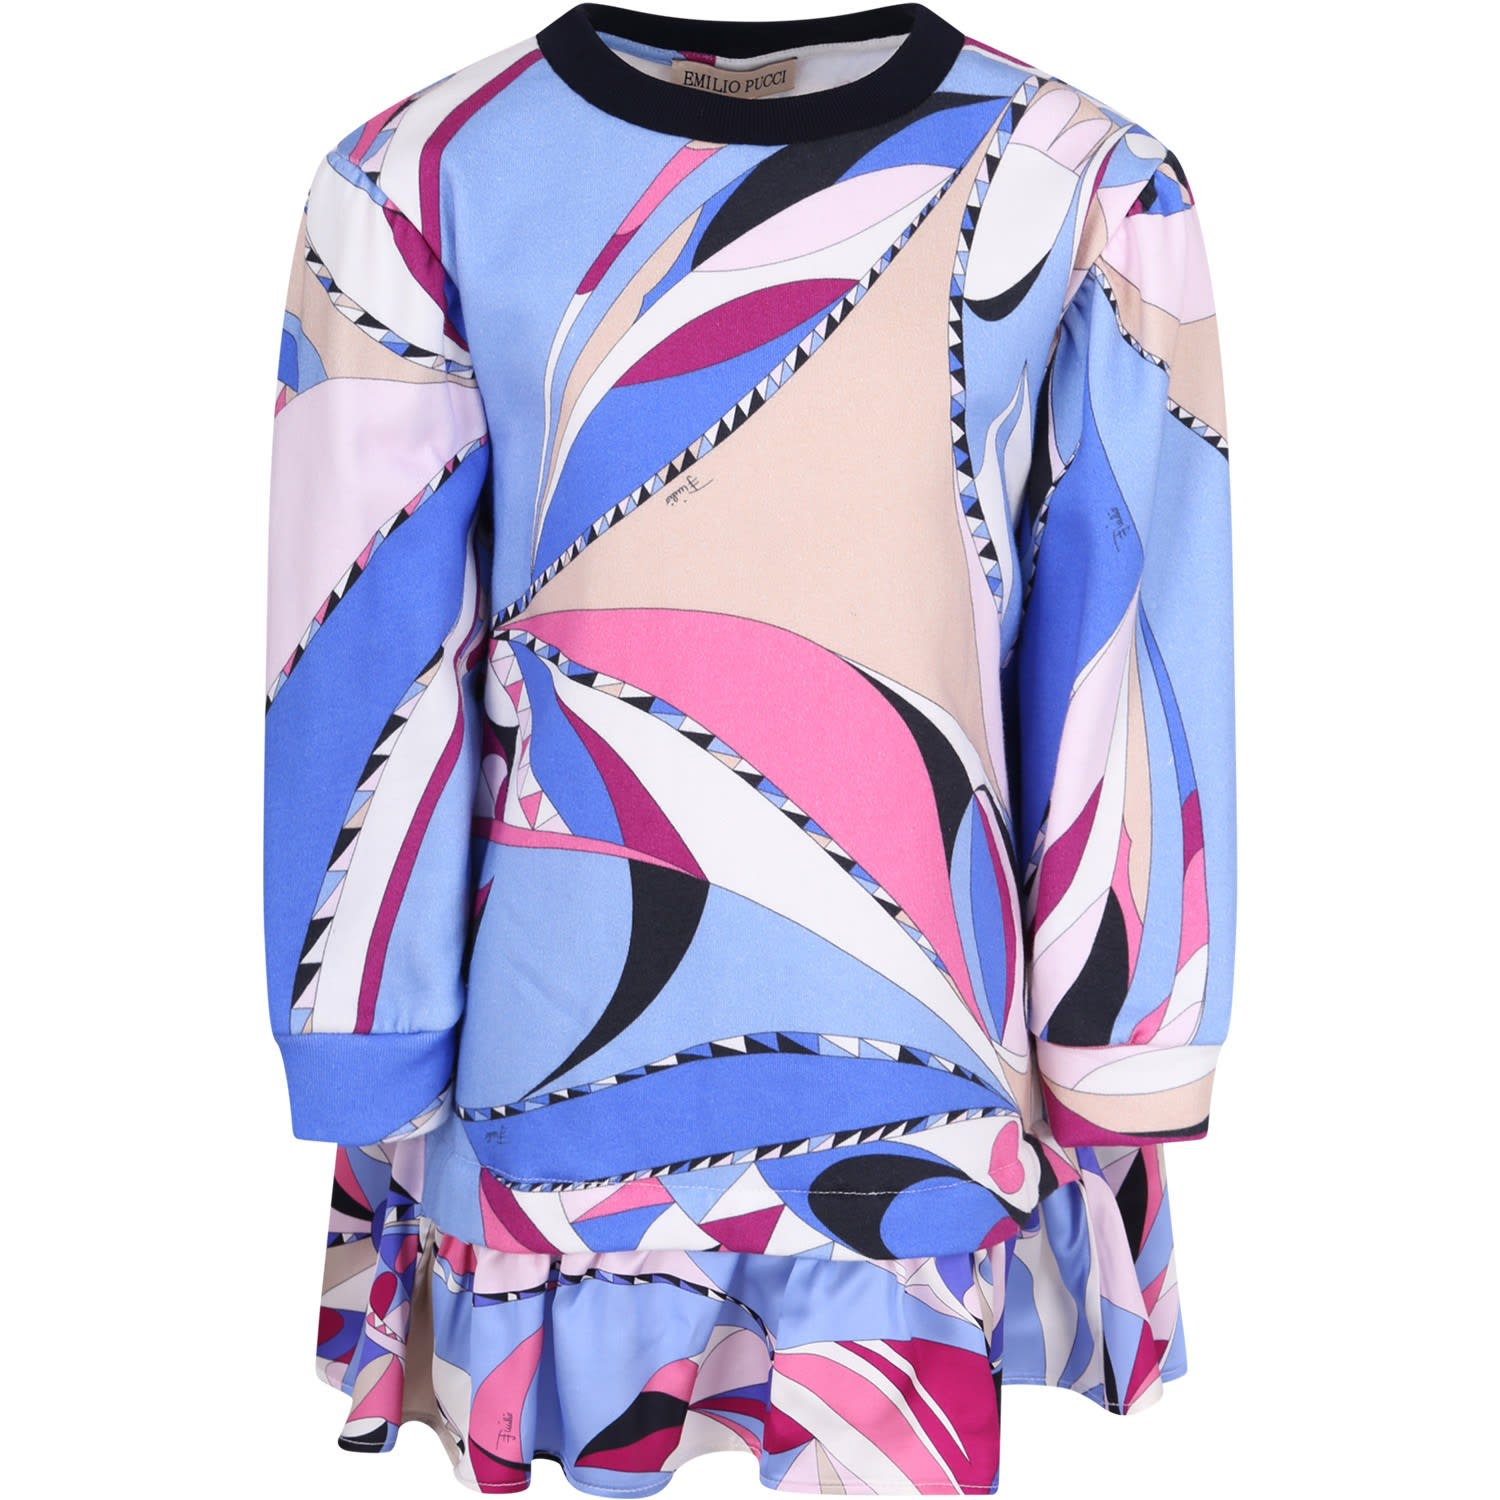 Emilio Pucci Light Blue Girl Dress With Colorful Iconic Print